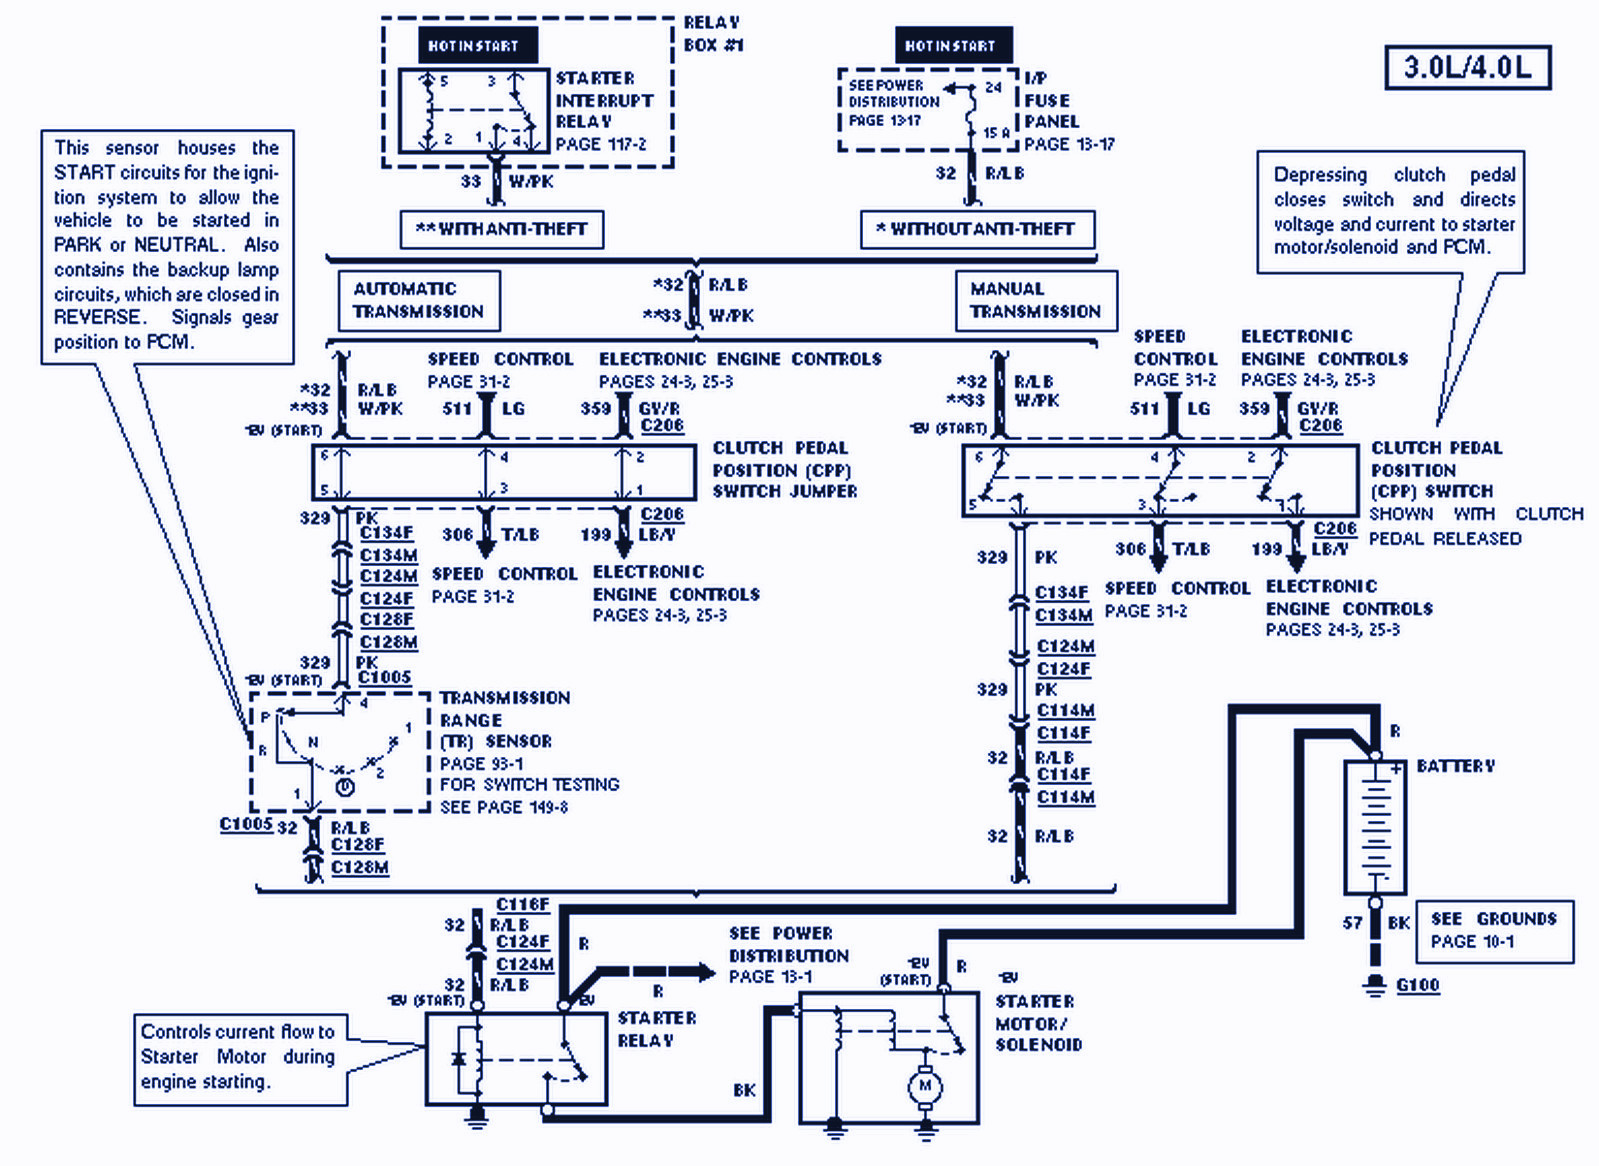 diagram] 96 ford ranger wiring diagram full version hd quality wiring  diagram - beastmodewiringn.previtech.it  beastmodewiringn.previtech.it